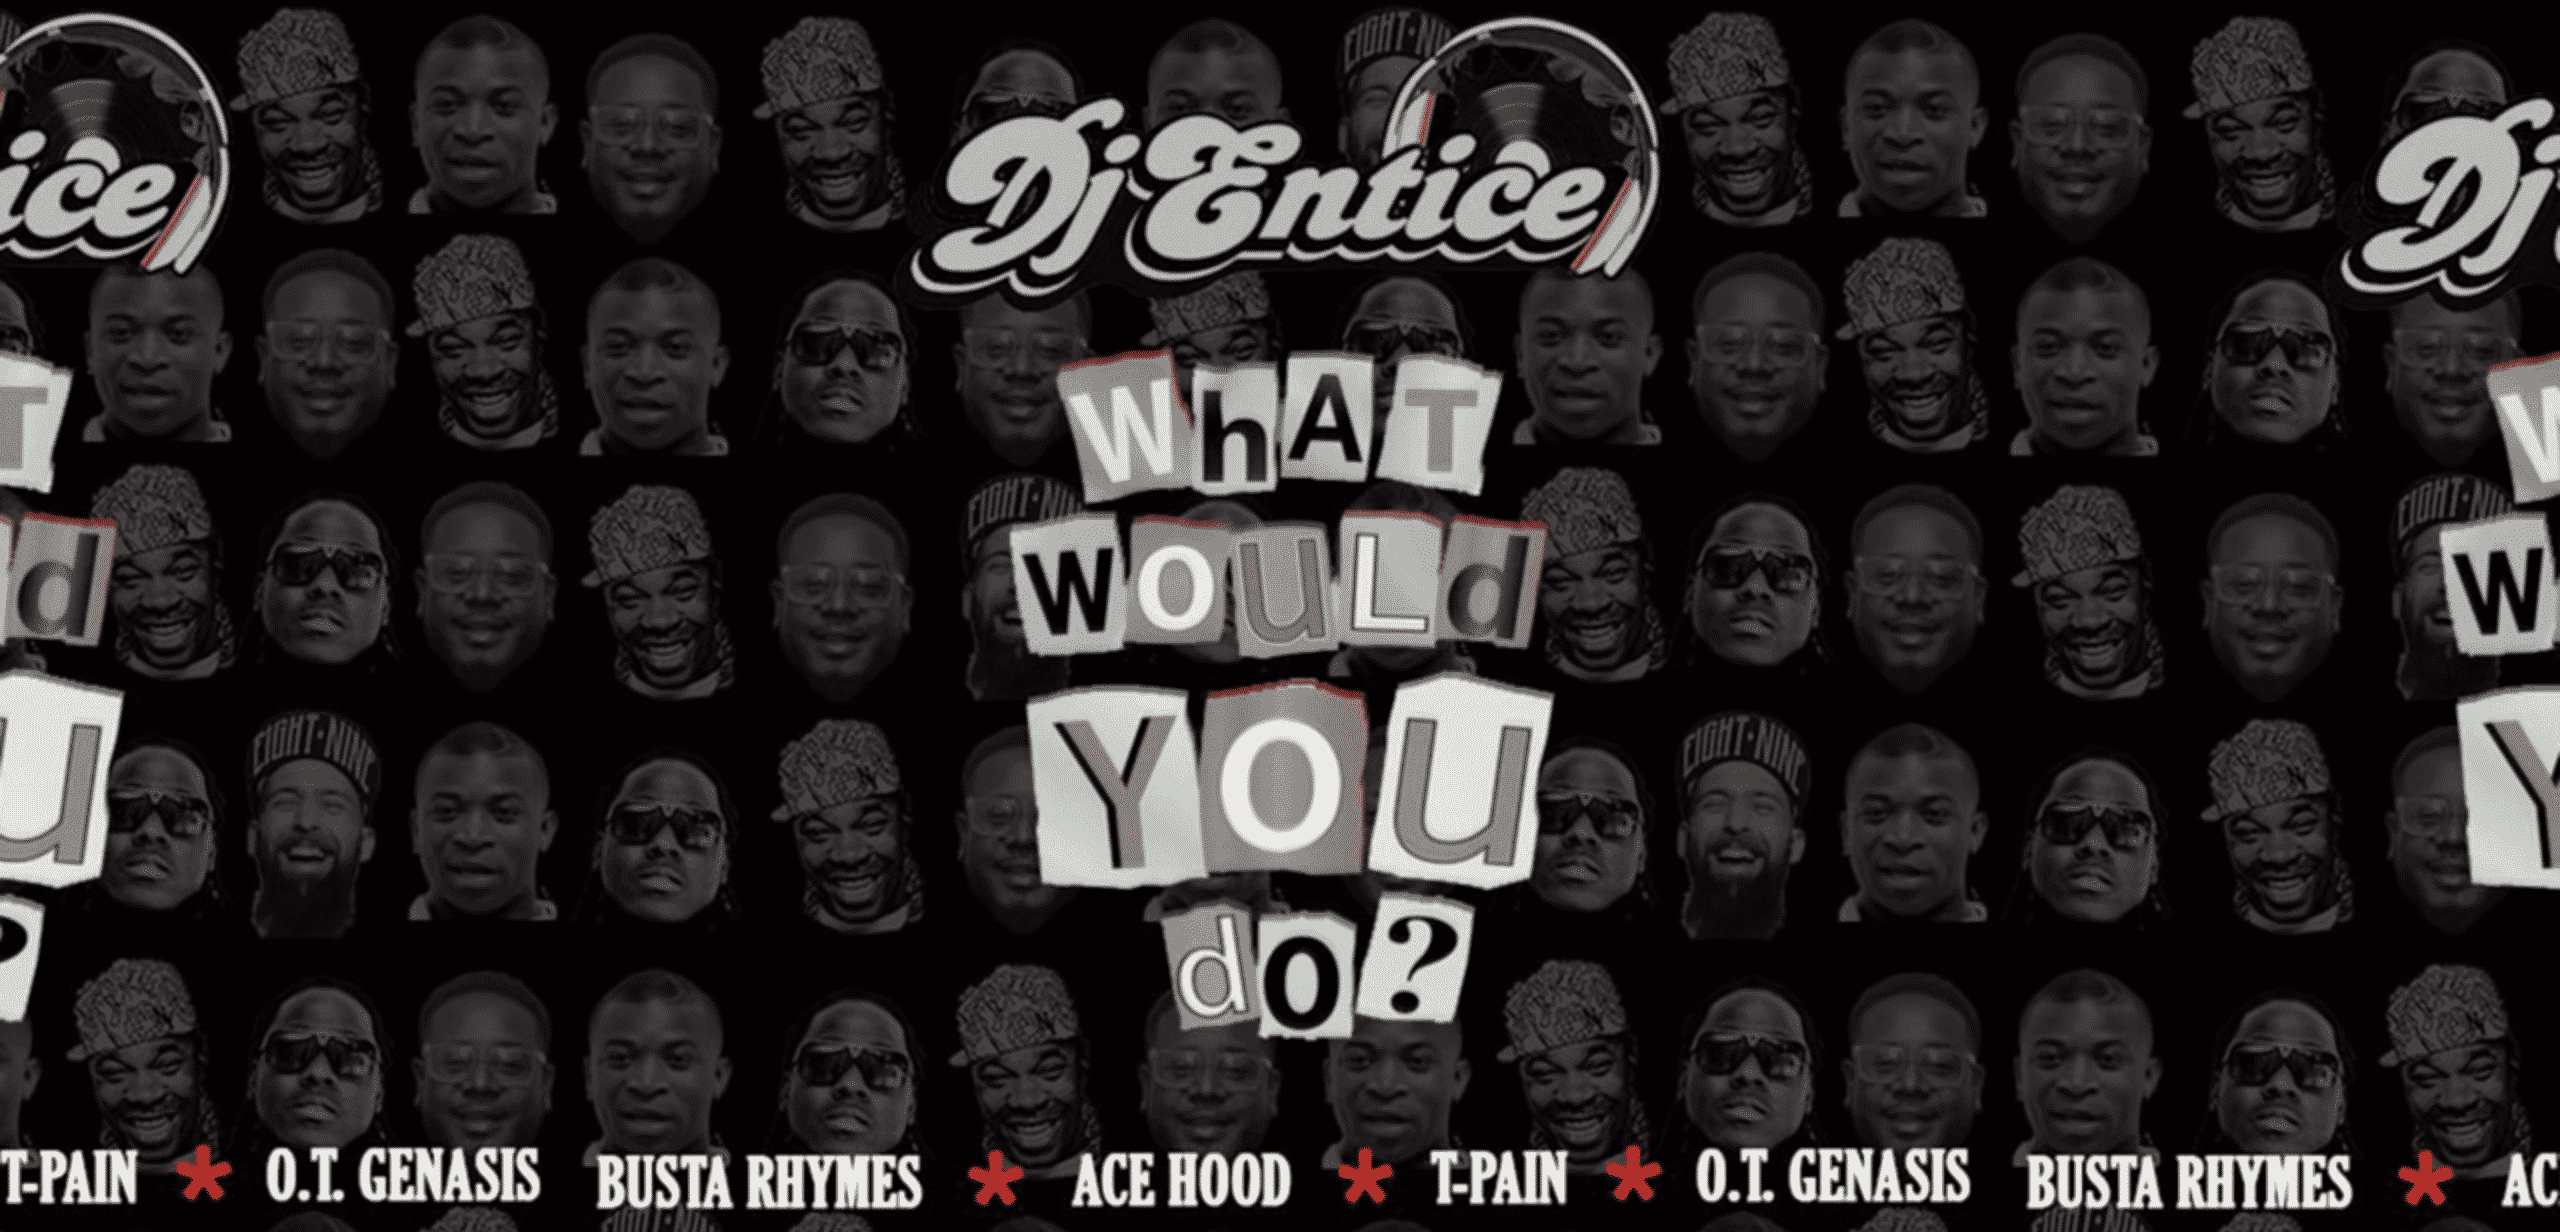 image what would you do ? de dj entice